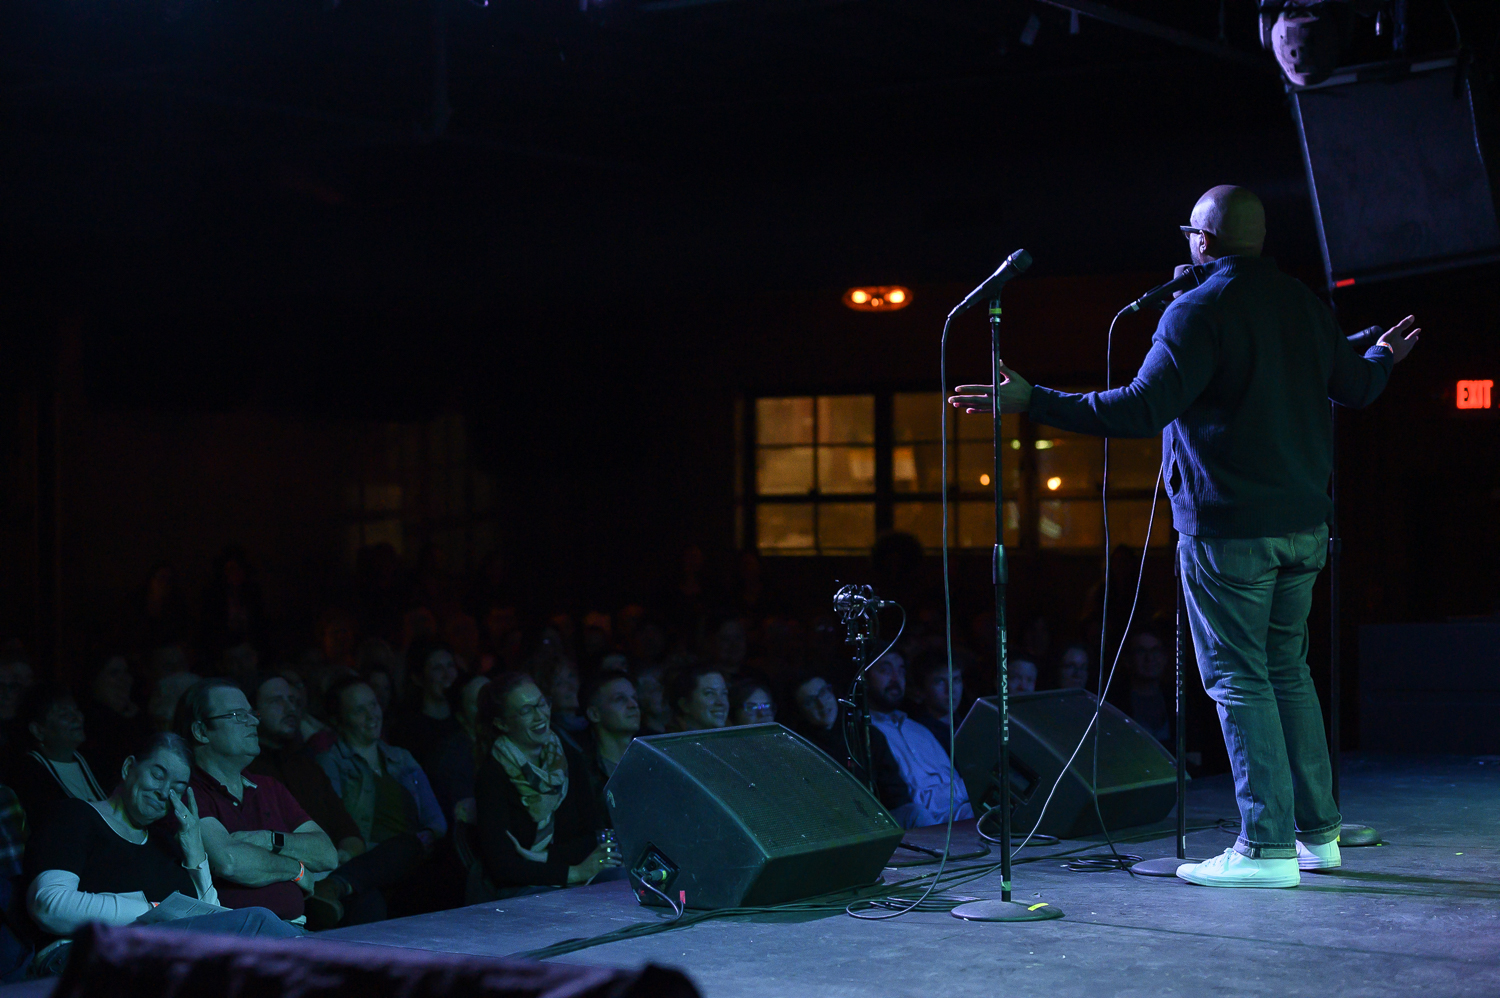 Kenny Kinds shares his story with the Story Collider audience at the Ready Room in St. Louis, MO in March 2019. Photo by David Kovaluk.